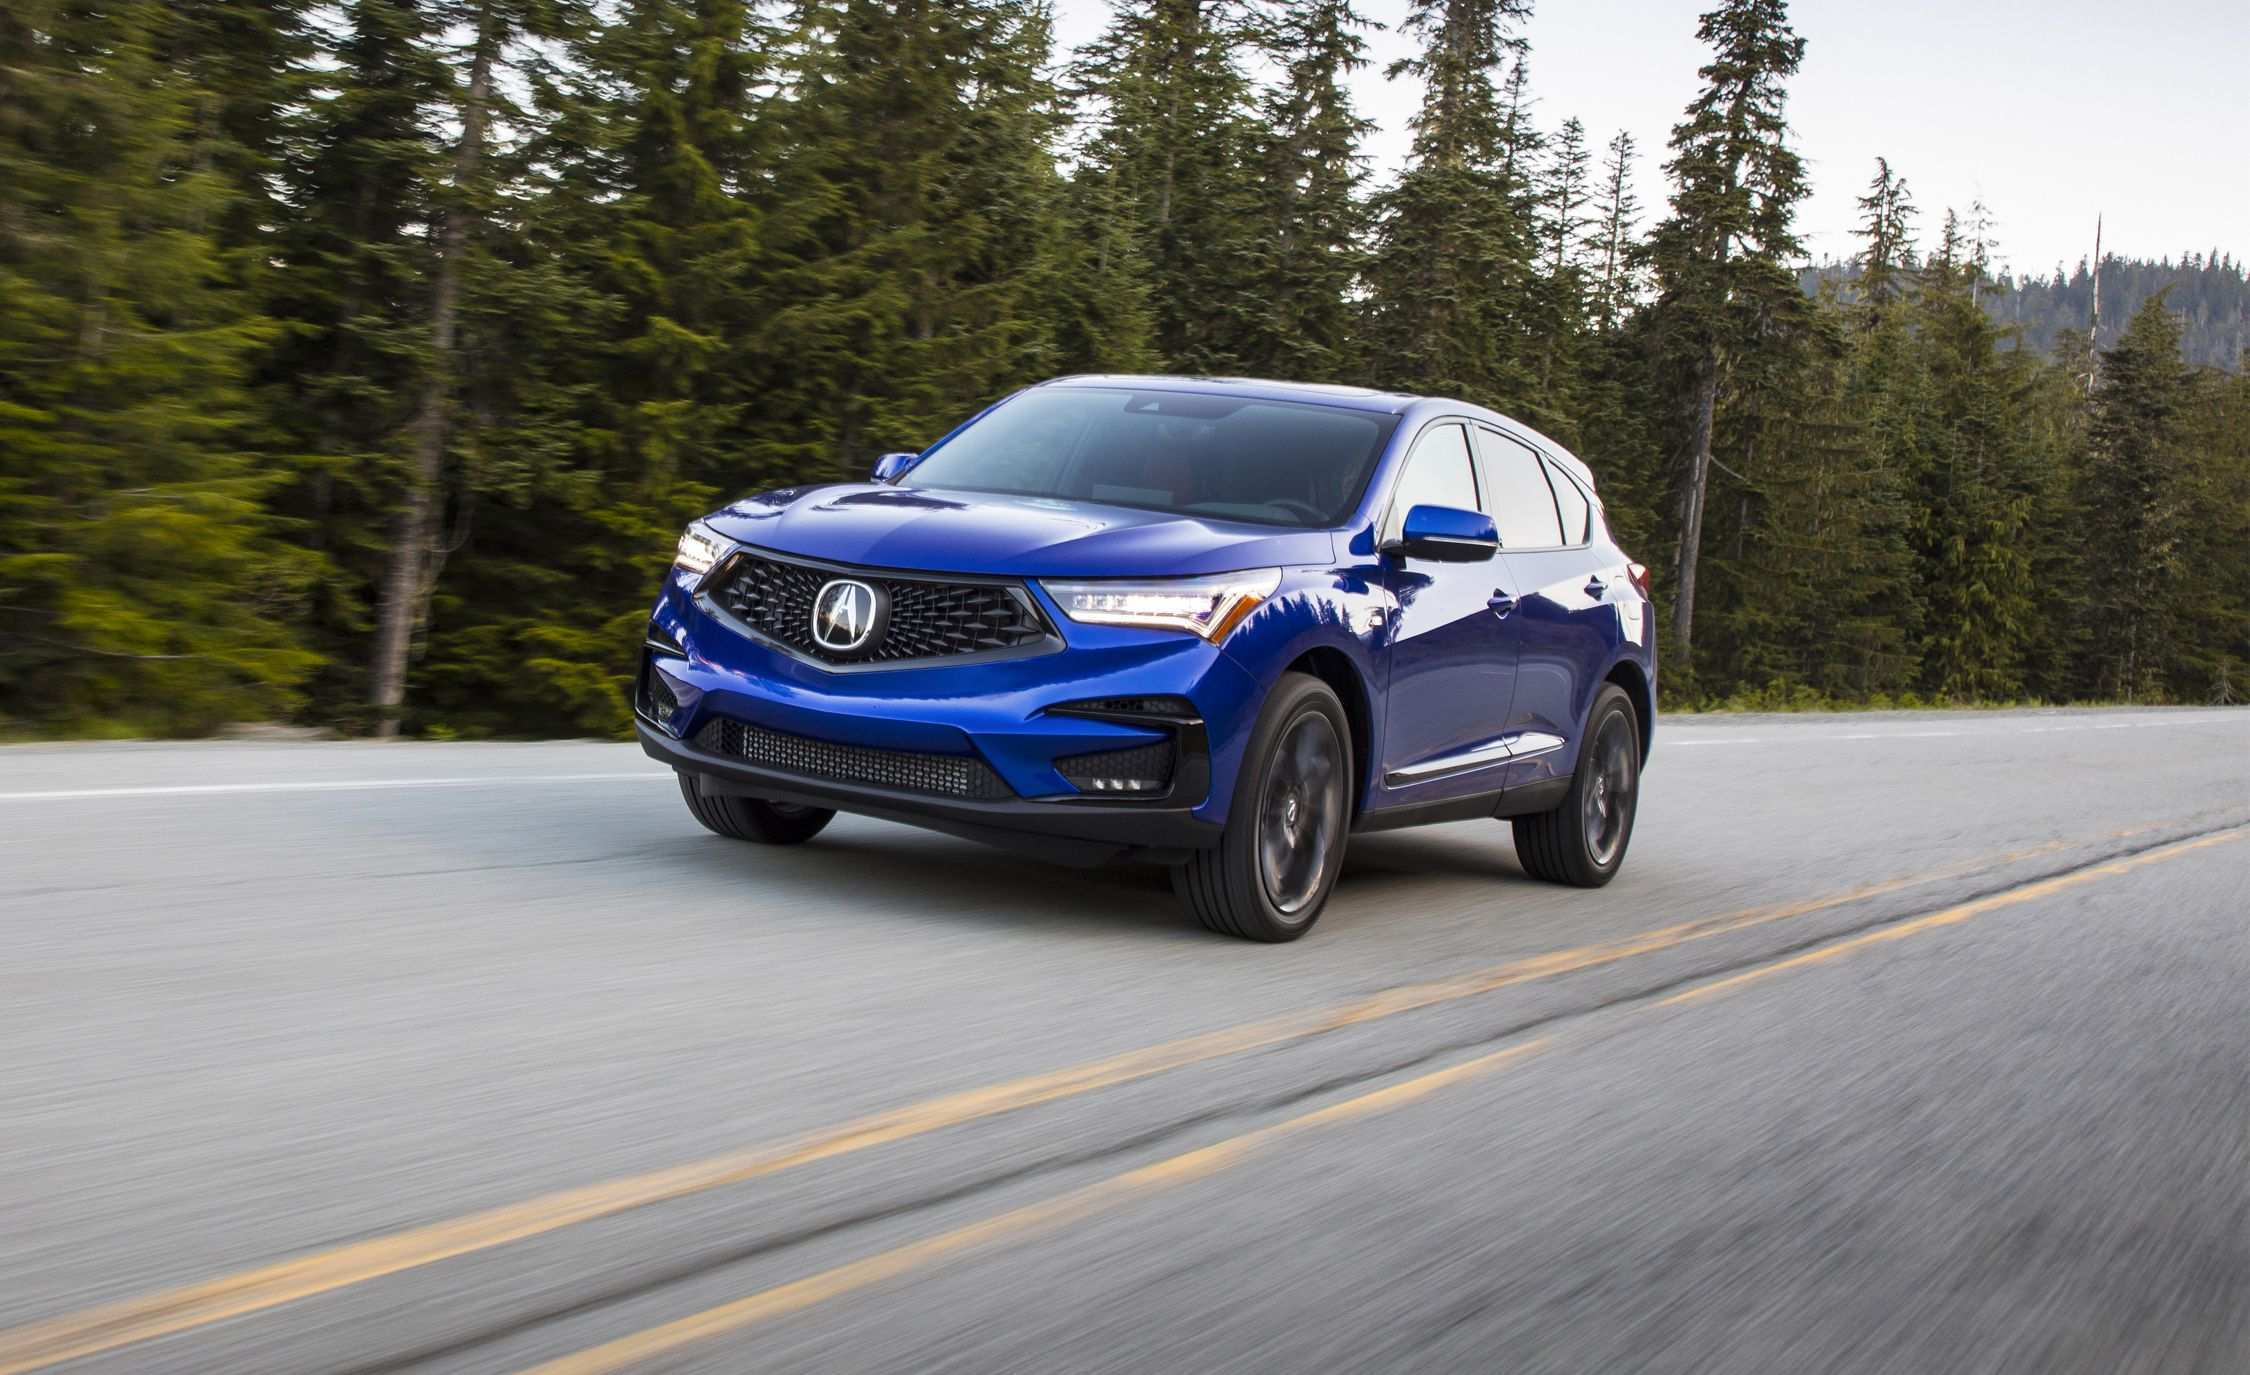 37 All New The 2019 Acura Rdx Quarter Mile Price And Review History for The 2019 Acura Rdx Quarter Mile Price And Review